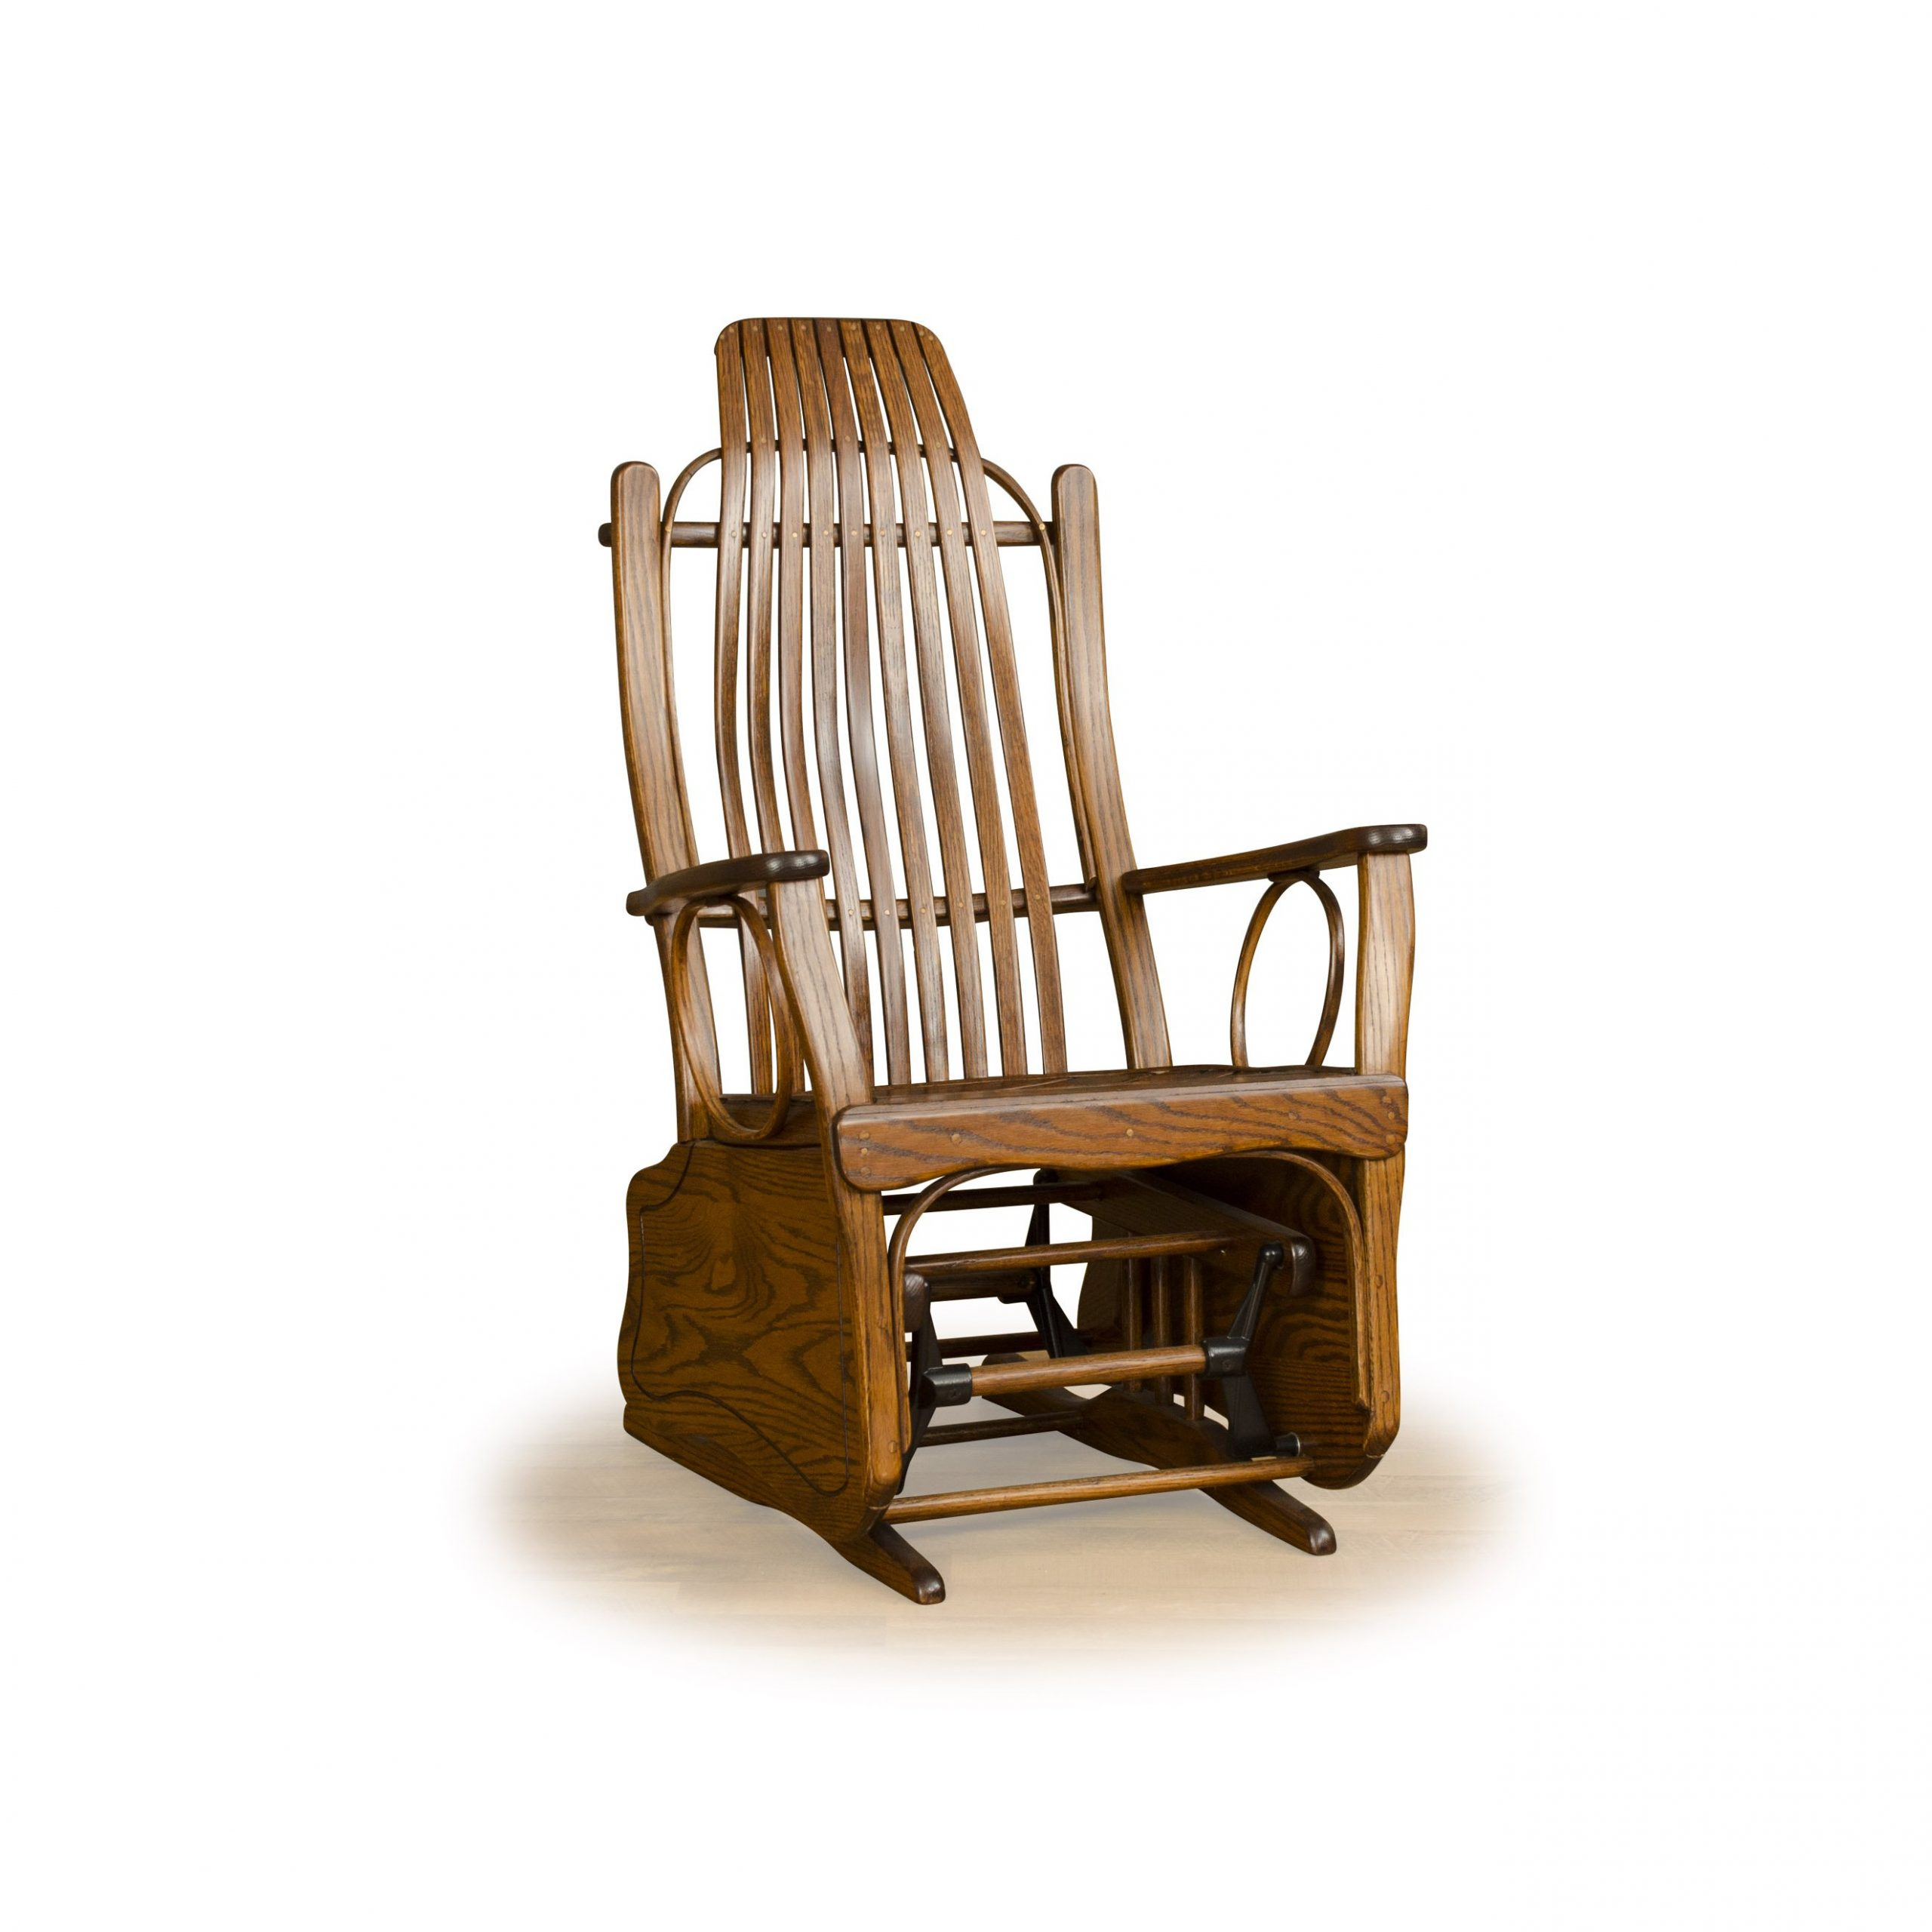 All About Byler's Rustic Furniture – Adirondack Furniture Inside Cedar Colonial Style Glider Benches (View 15 of 25)